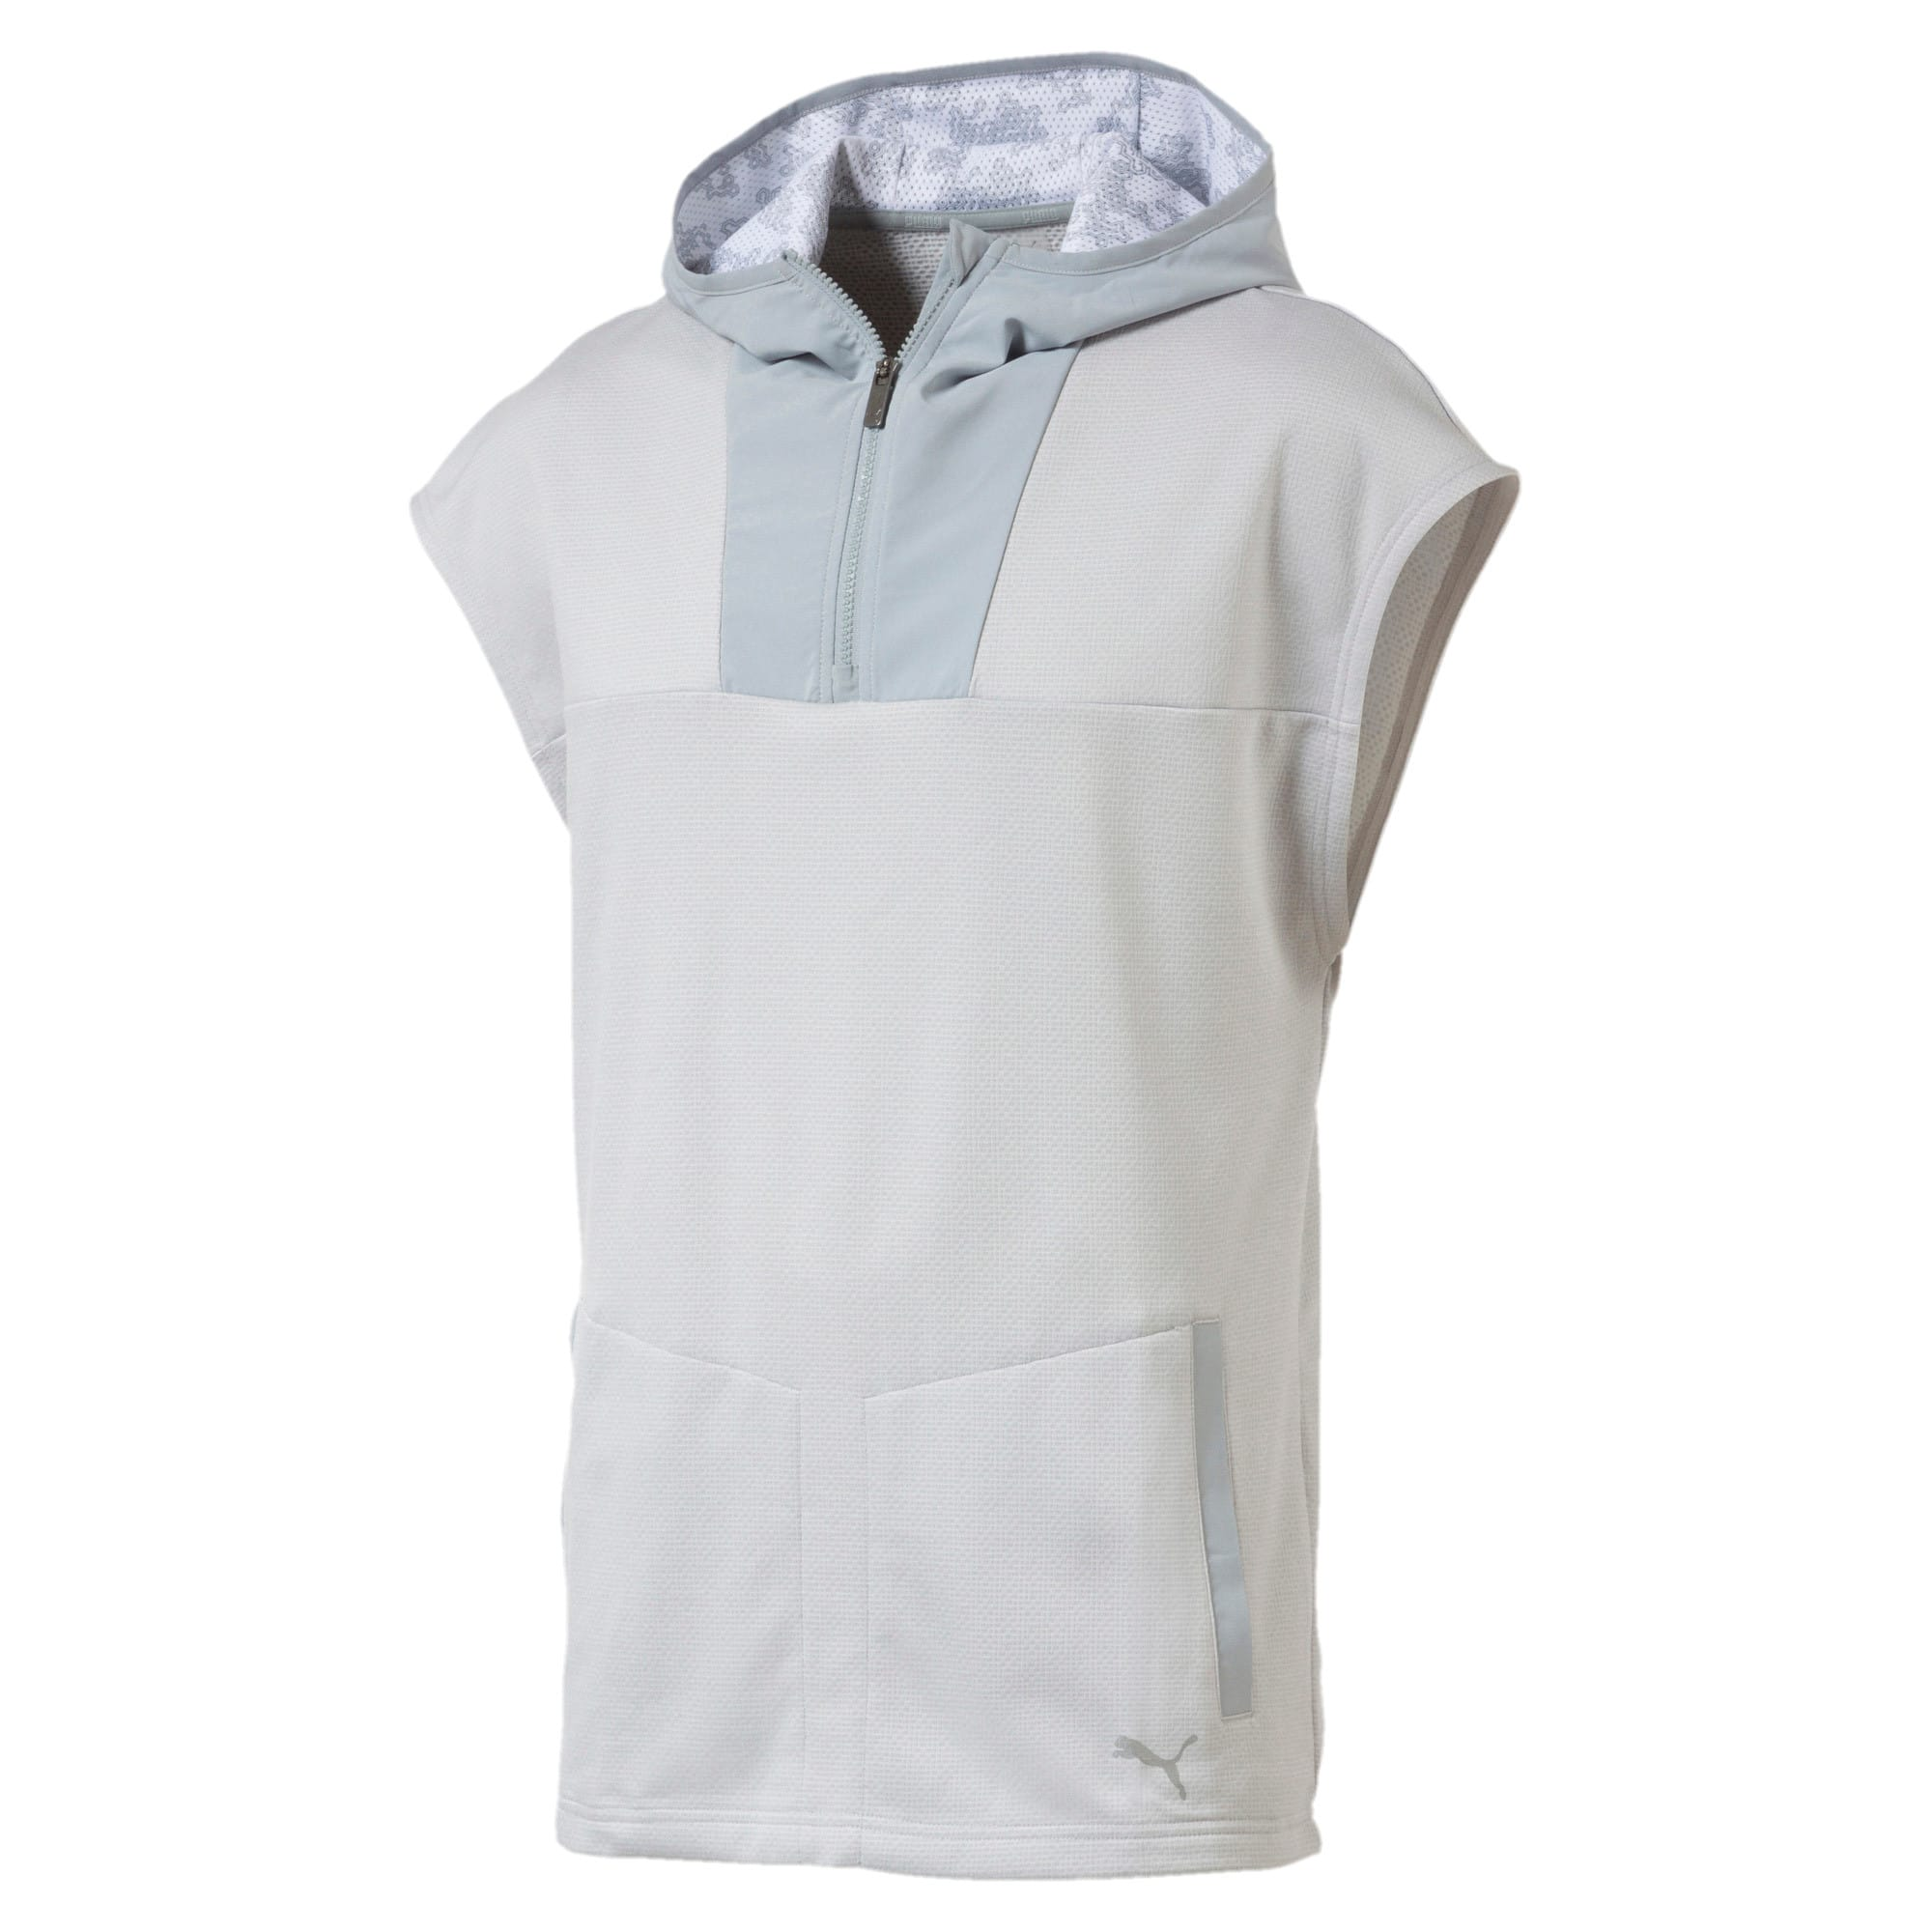 Oceanaire Men's Sleeveless Hoodie, Light Gray Heather, large-IND